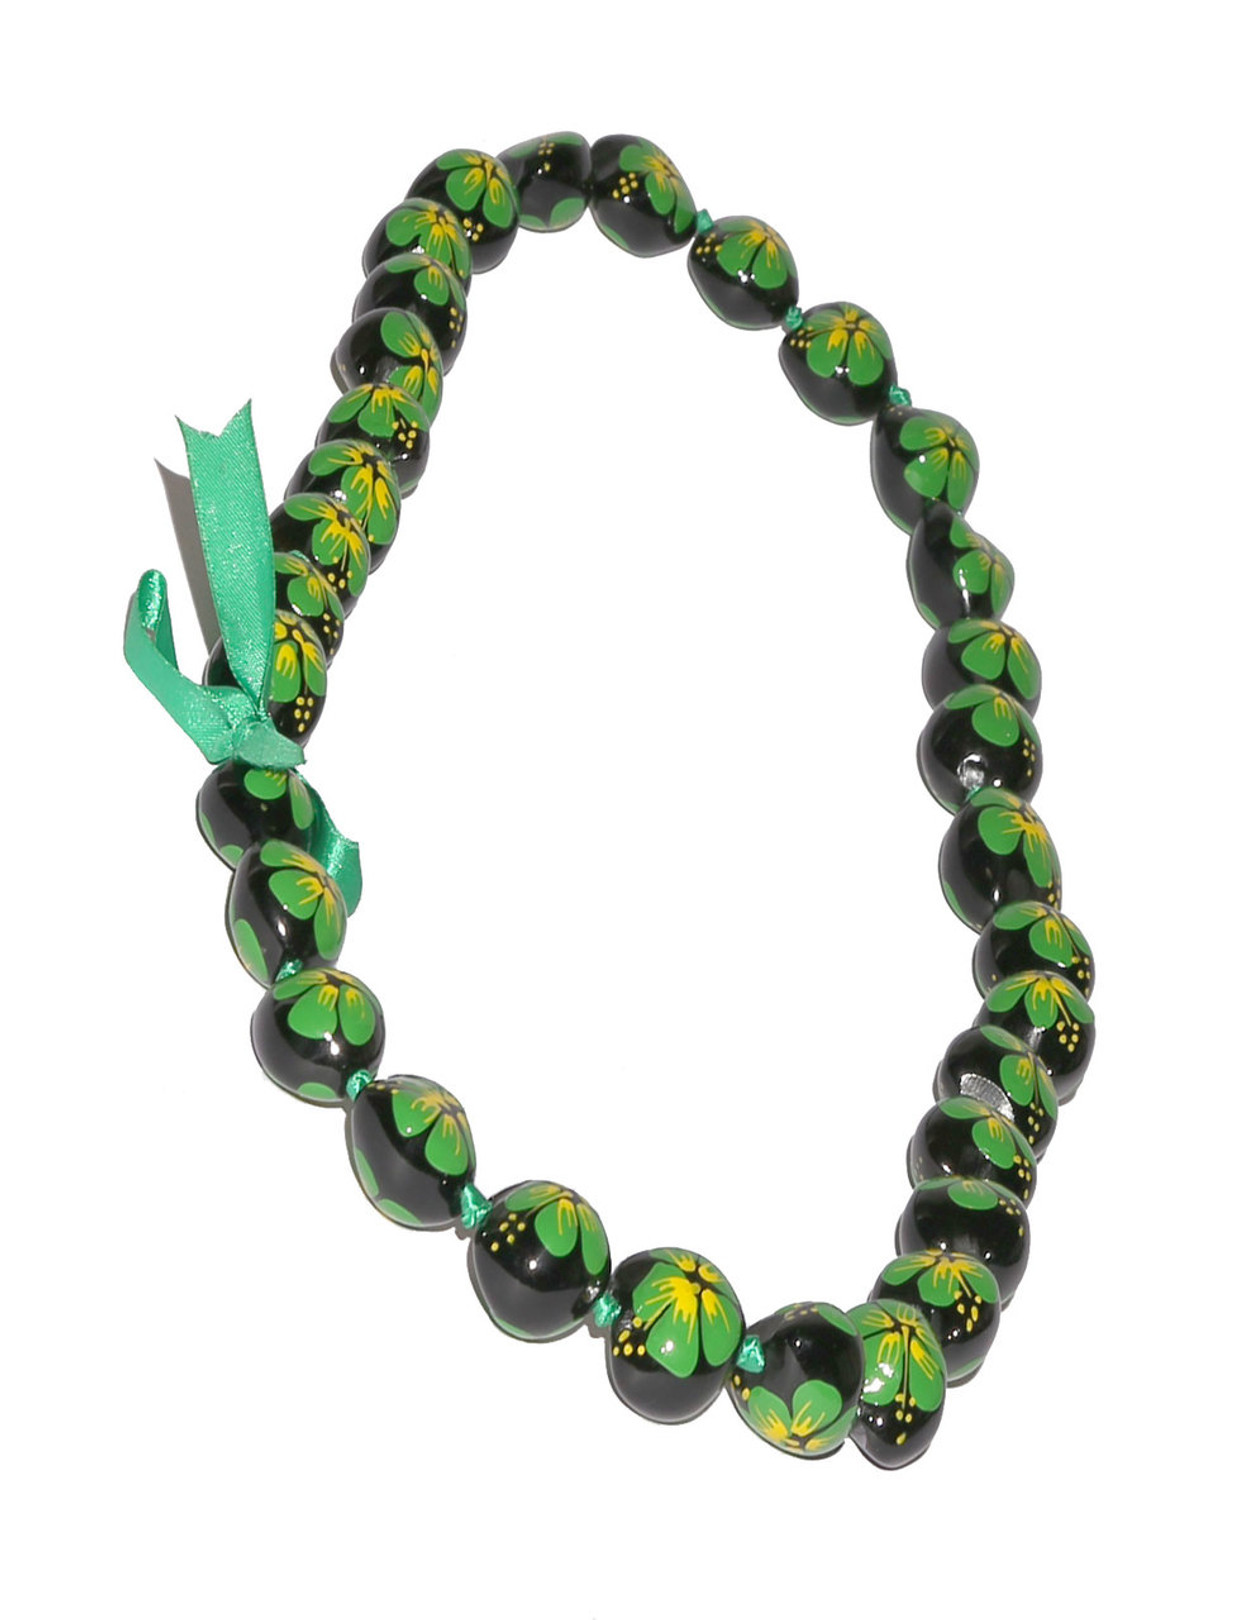 green nut mexico products sample official la kukui necklace de fmf white porra